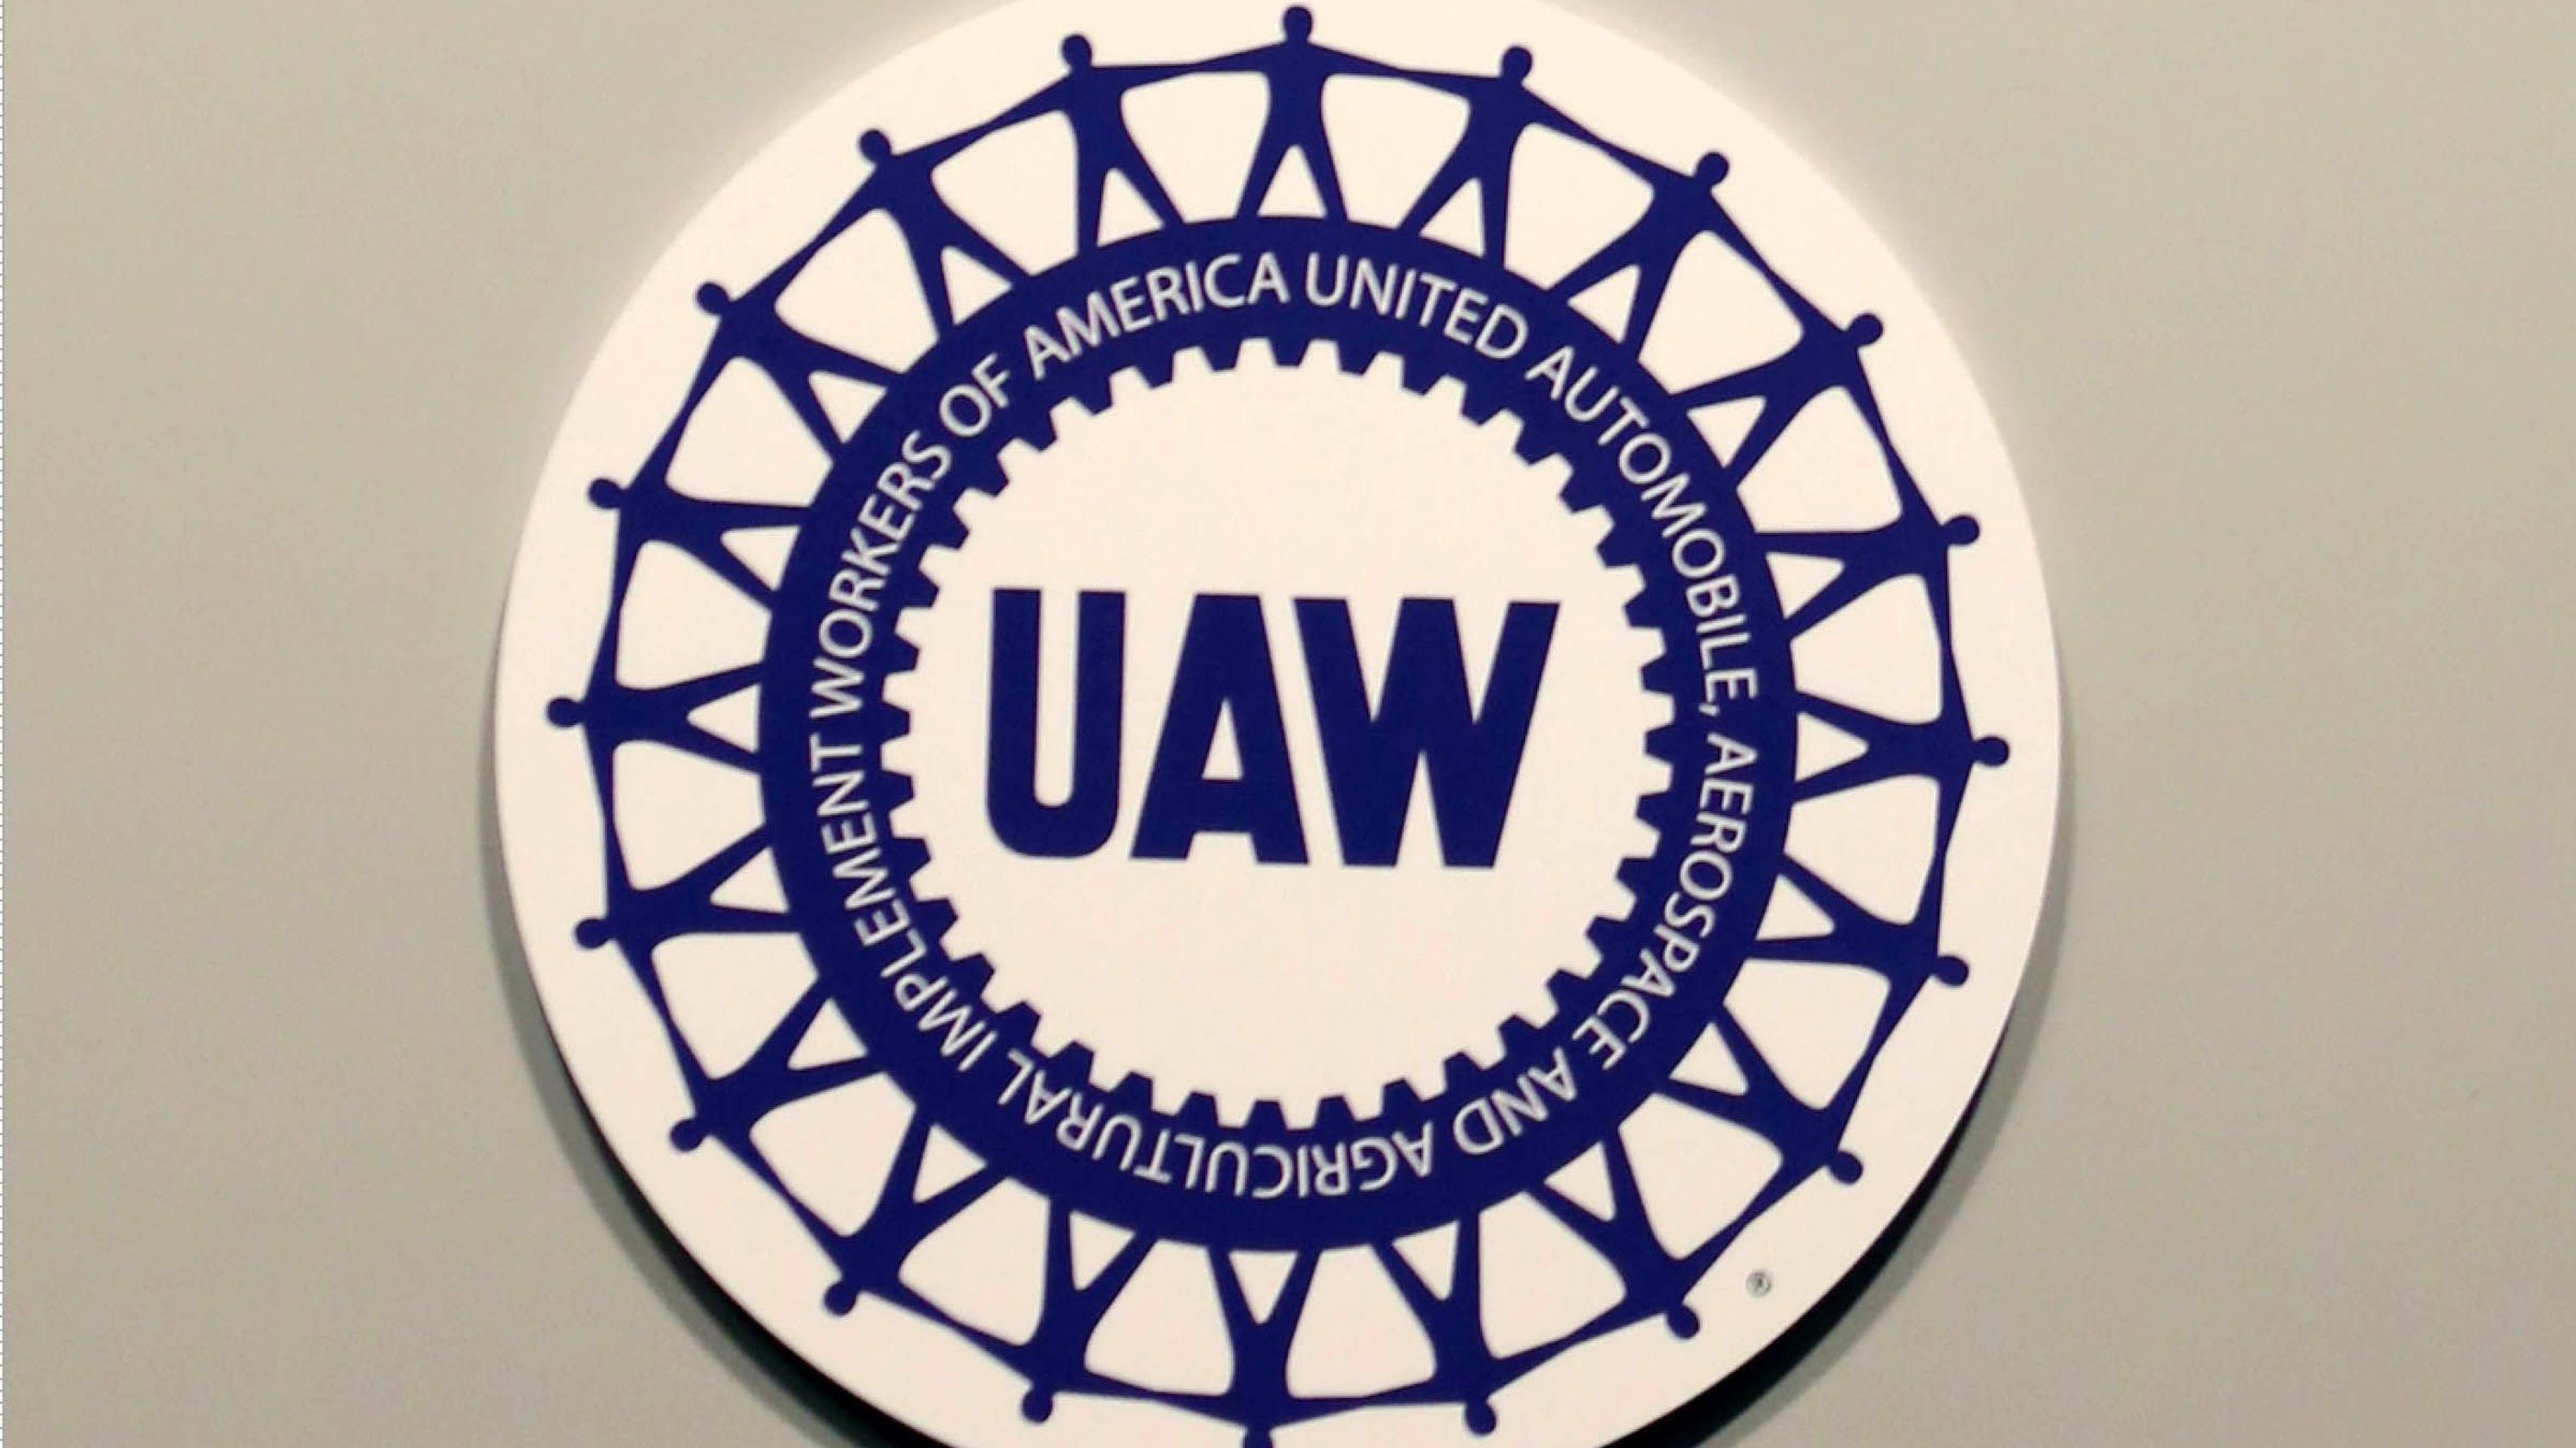 UAW authorizes strike; union targets General Motors first in contract talks